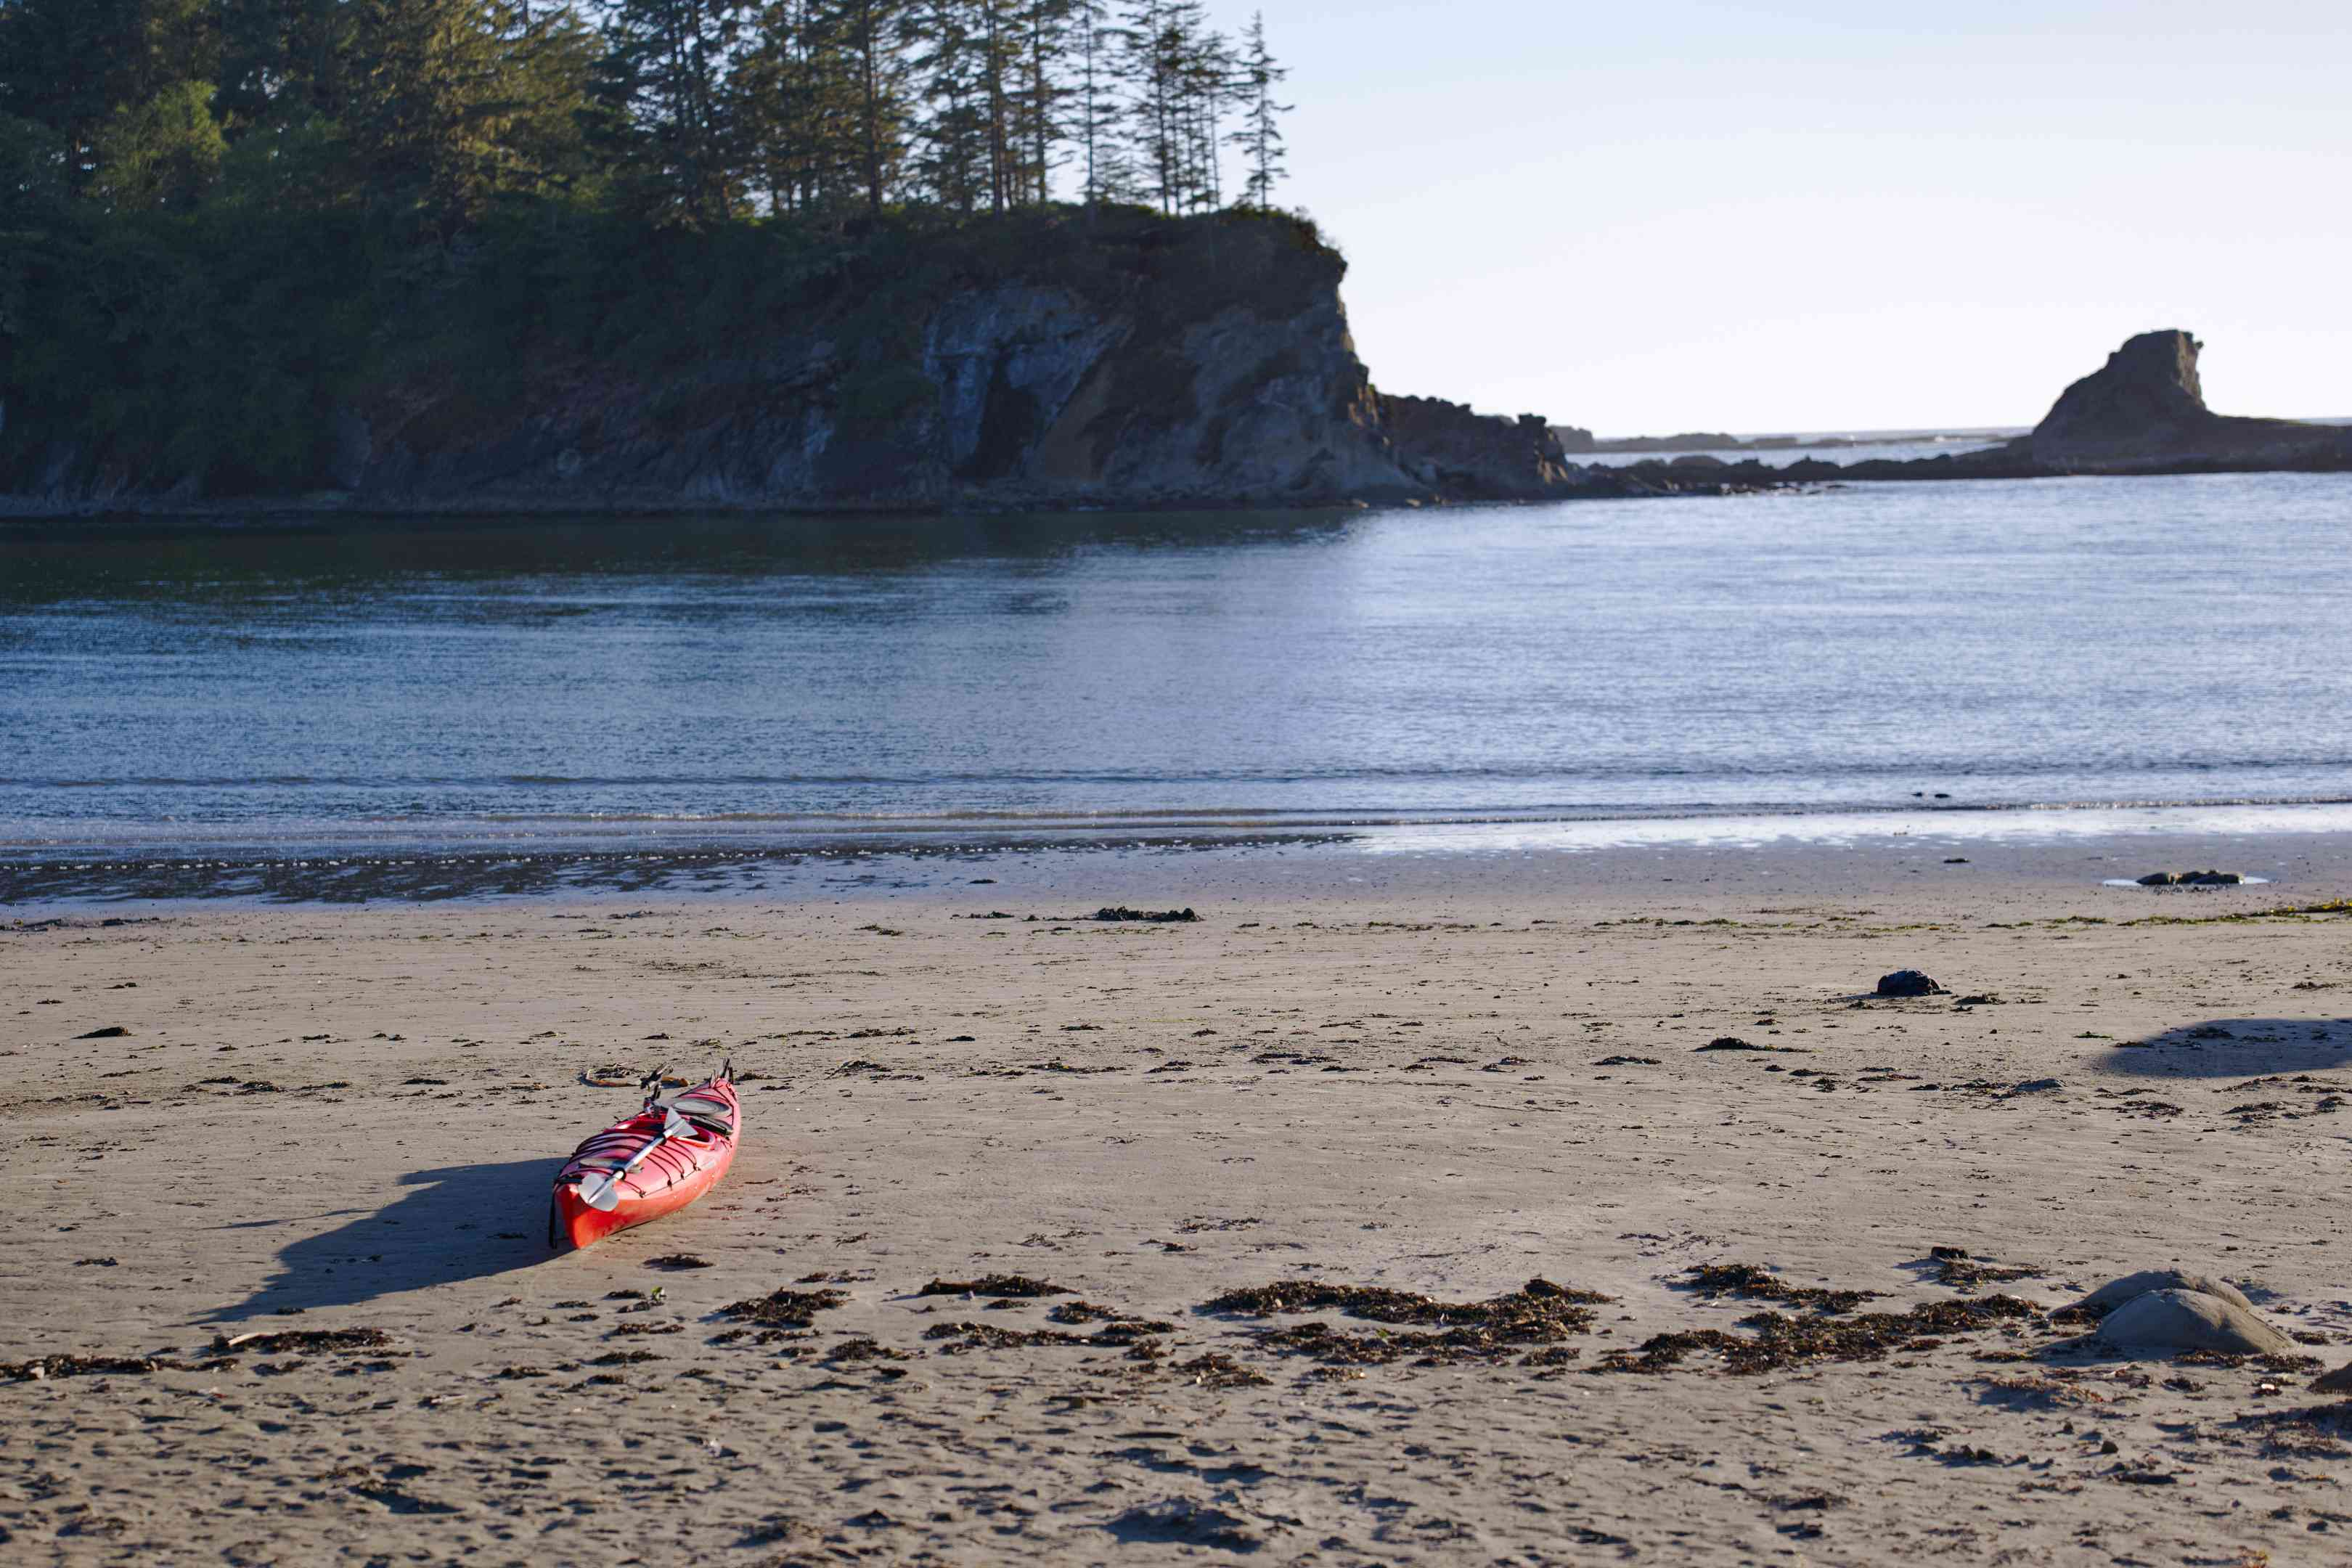 single red kayak sits on shore of rocky wooded beach